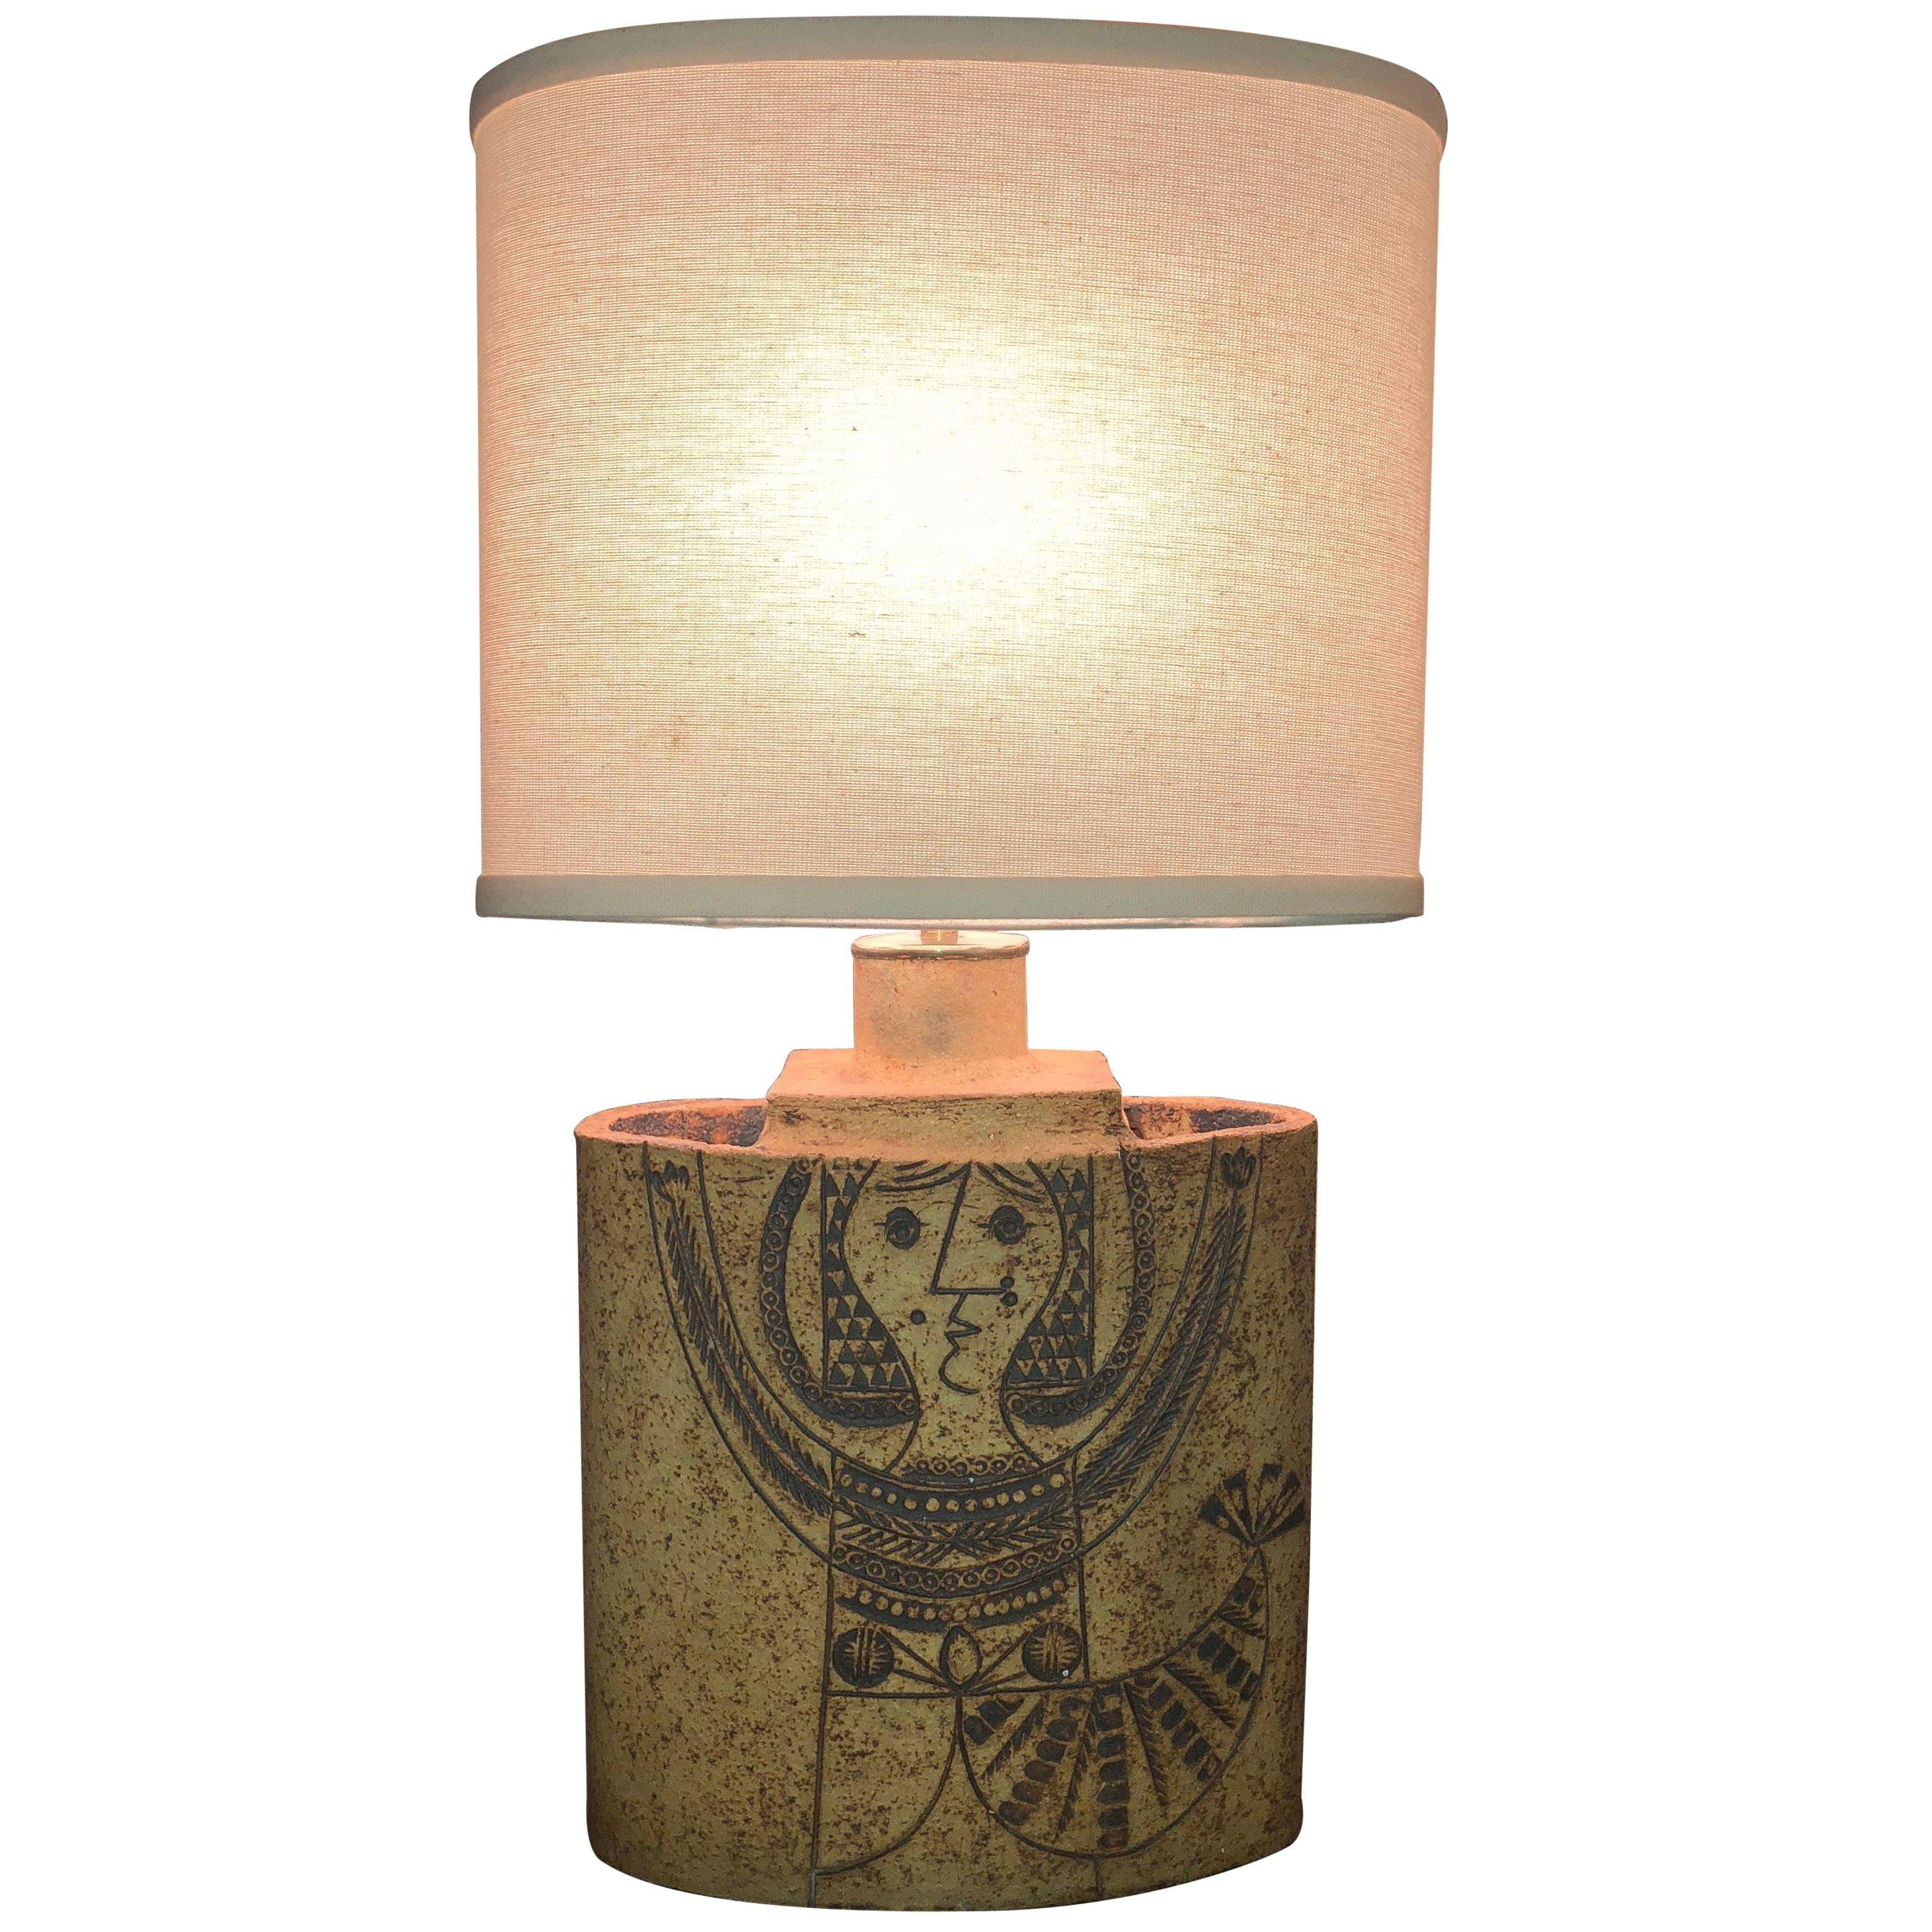 Elliptical Ceramic Table Lamp by Roger Capron circa 1960 Made in France